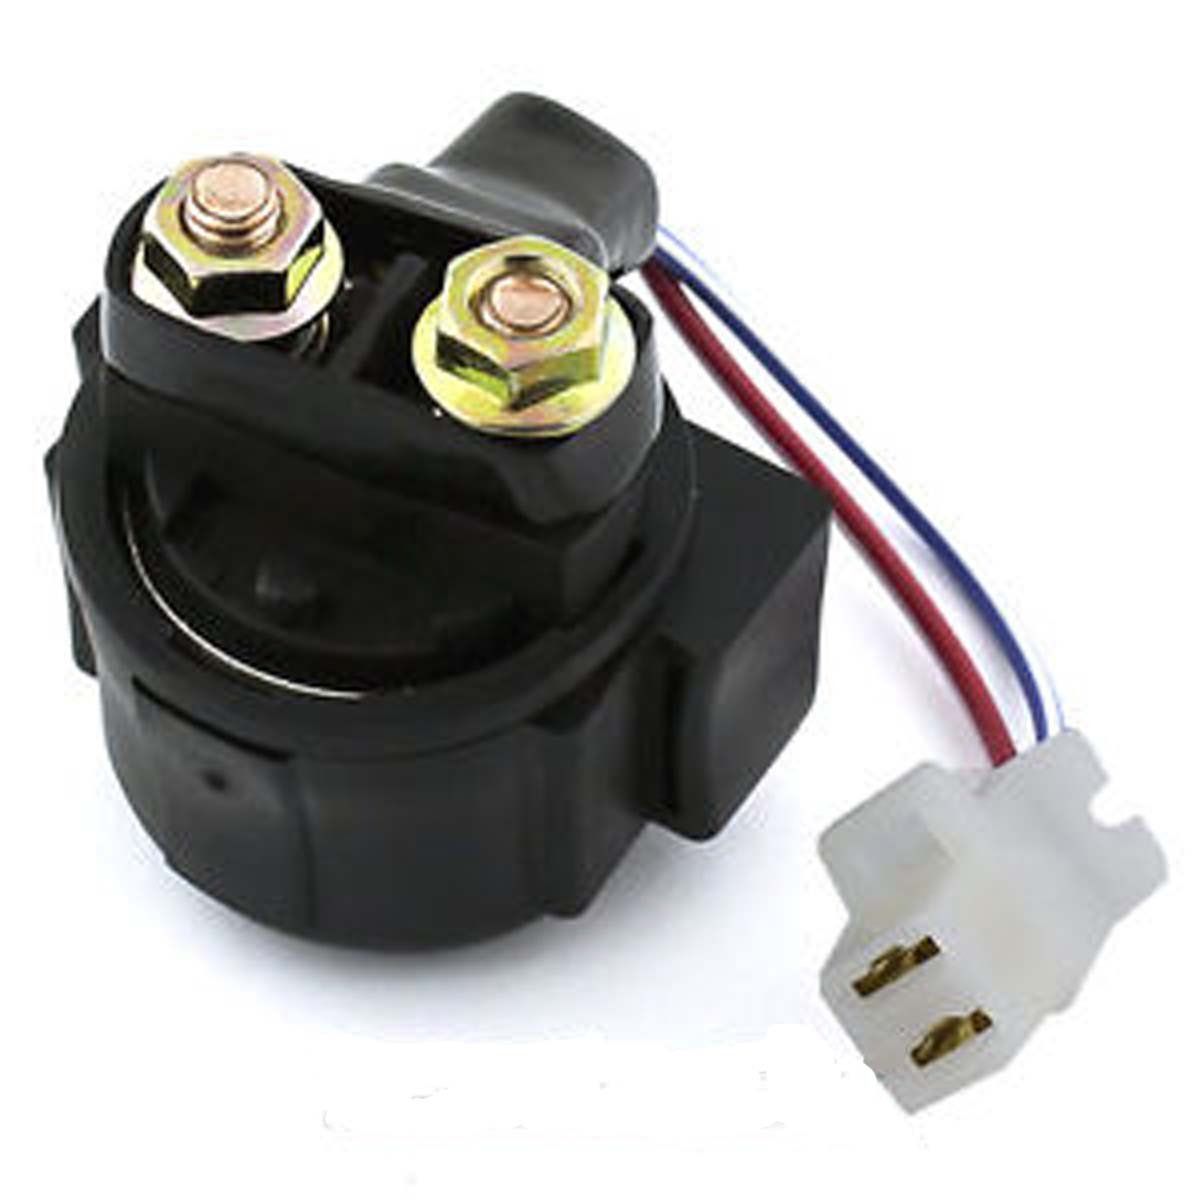 Yamaha ATV Starter Solenoid Model 50-400 / 600 Hp WSM PH375-AYA01 OEM# 3AY-81940-00-00, 3MW-81940-00-00, 3MW-81940-01-00, 4KB-81940-00-00, 4KD-81940-00-00, 5EH-81940-00-00 see description